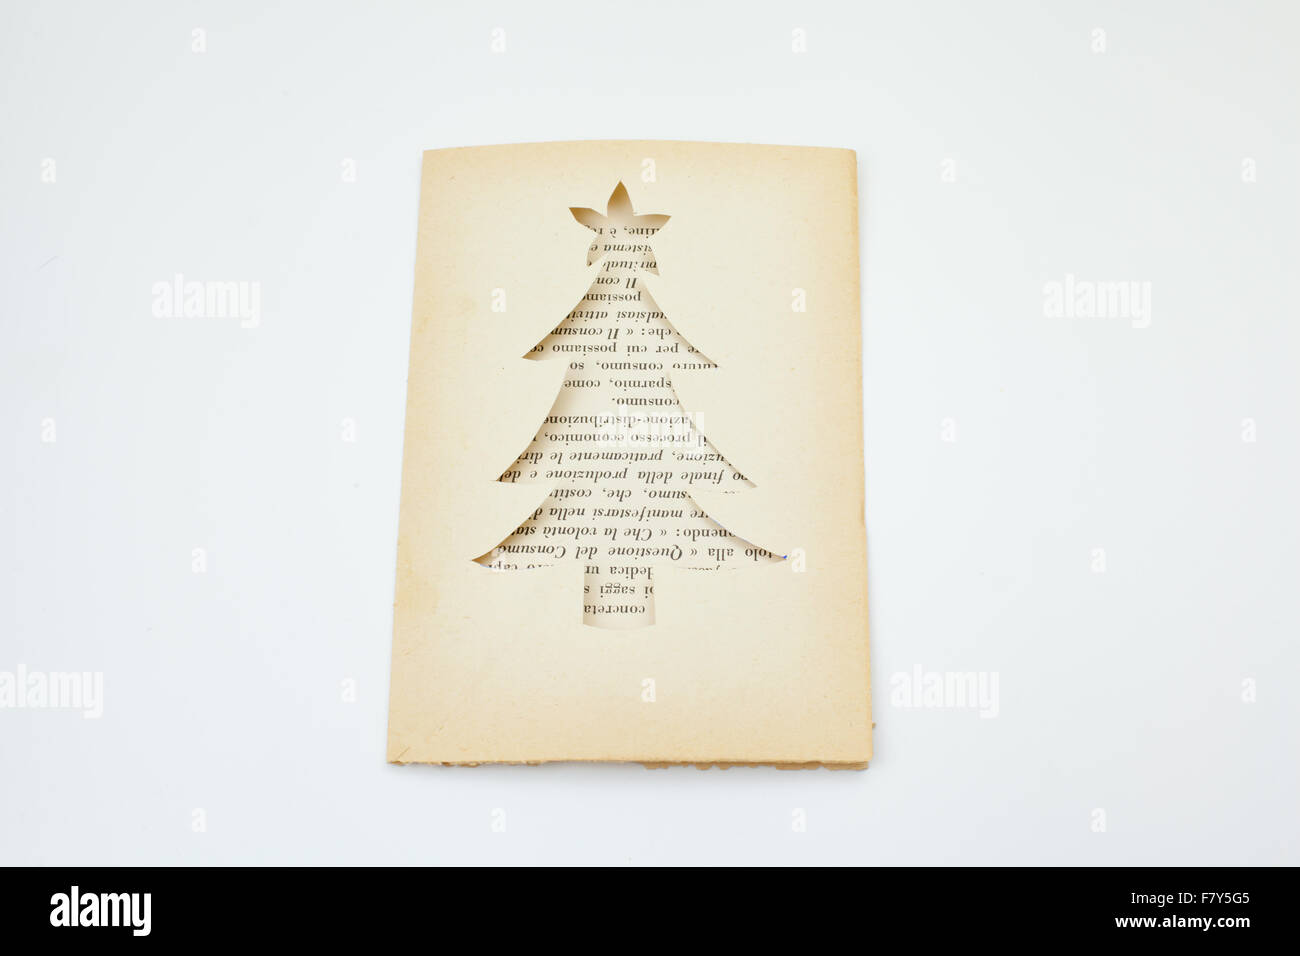 Christsmas invitation card on recycled paper Stock Photo: 90951509 ...